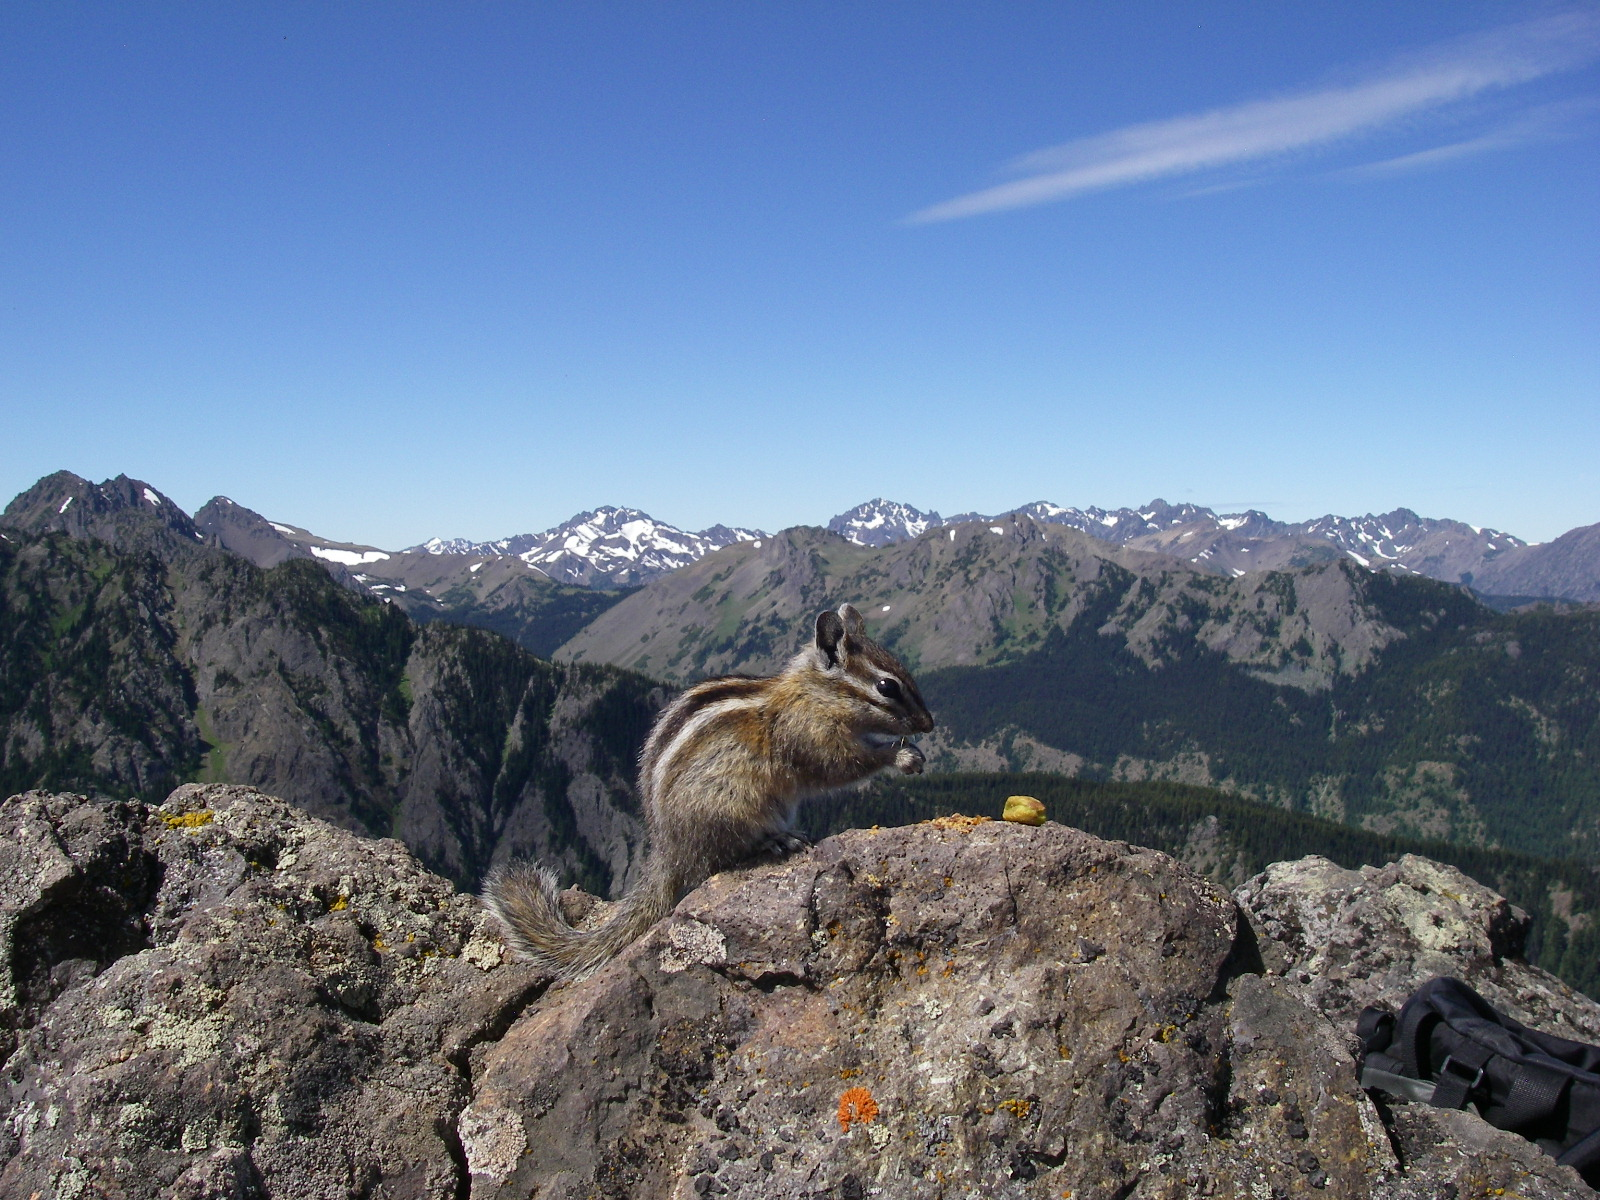 A companion celebrating with Colleen Burch and Rod Orlando on the summit of Mount Townsend in the Olympic National Fores,WA on July 25, 2016.  This was Colleen's first mountain seven weeks after a heart transplant. Colleen took the photograph.